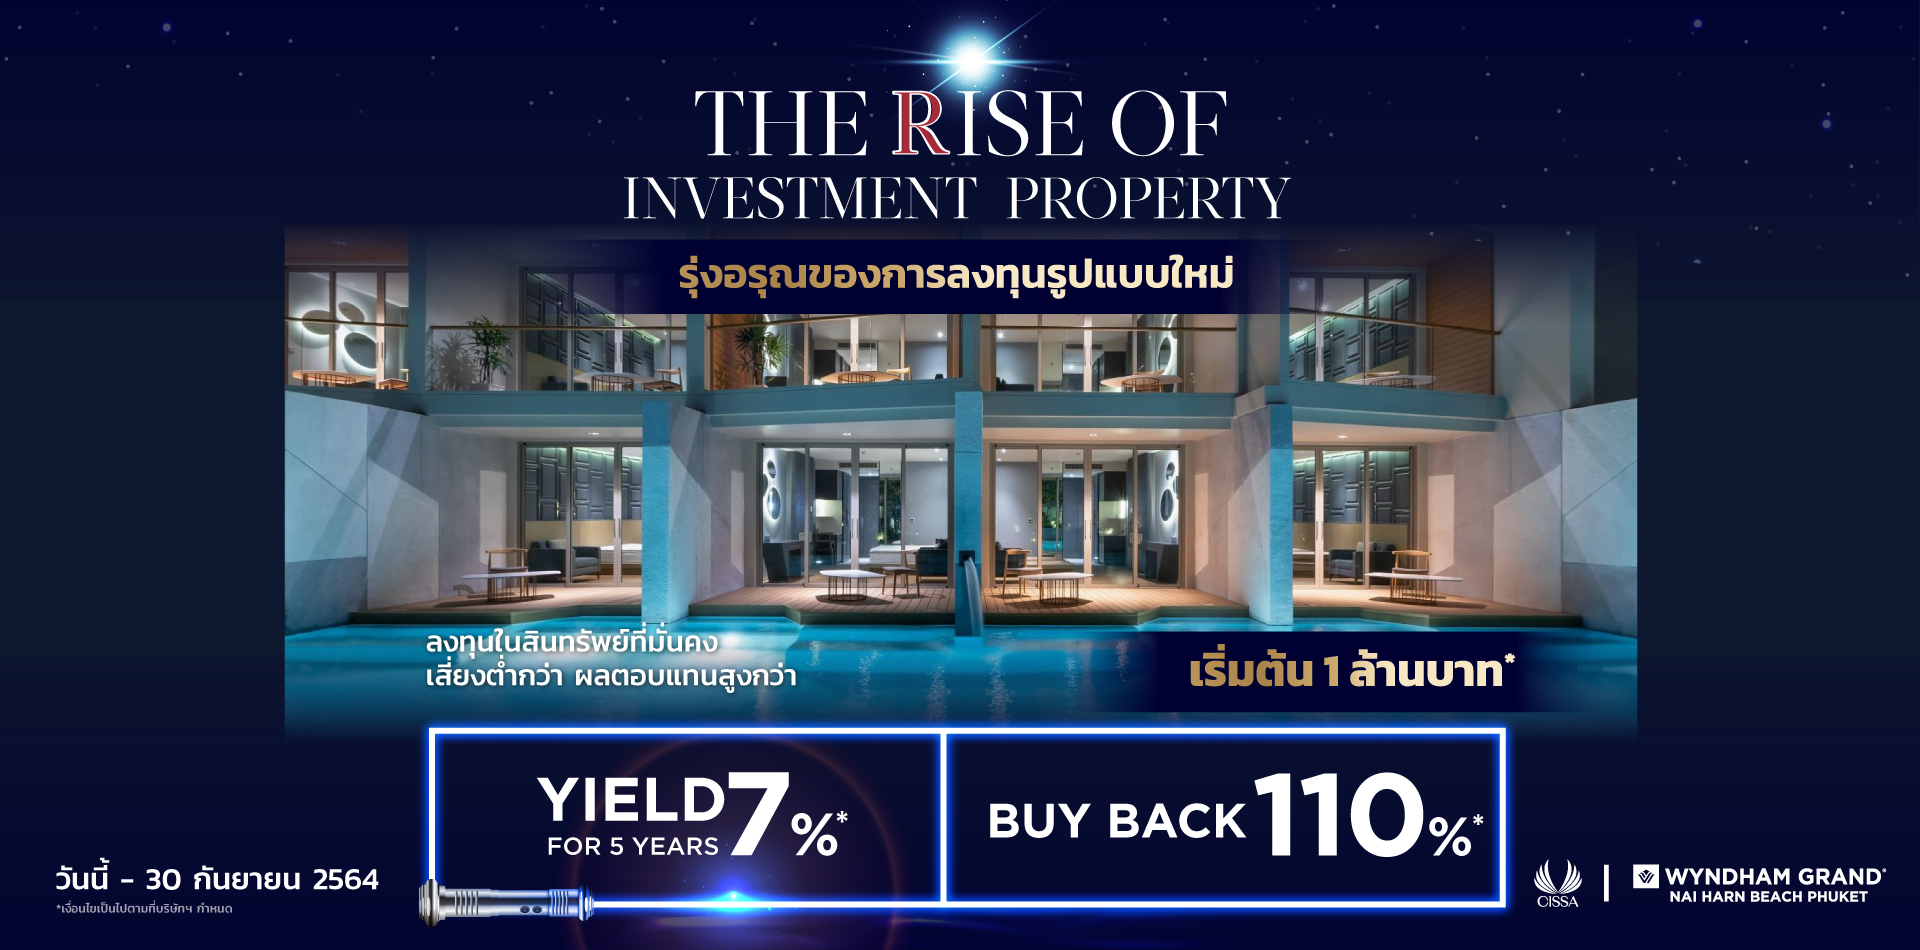 the-rise-of-investment-property-20210805-003